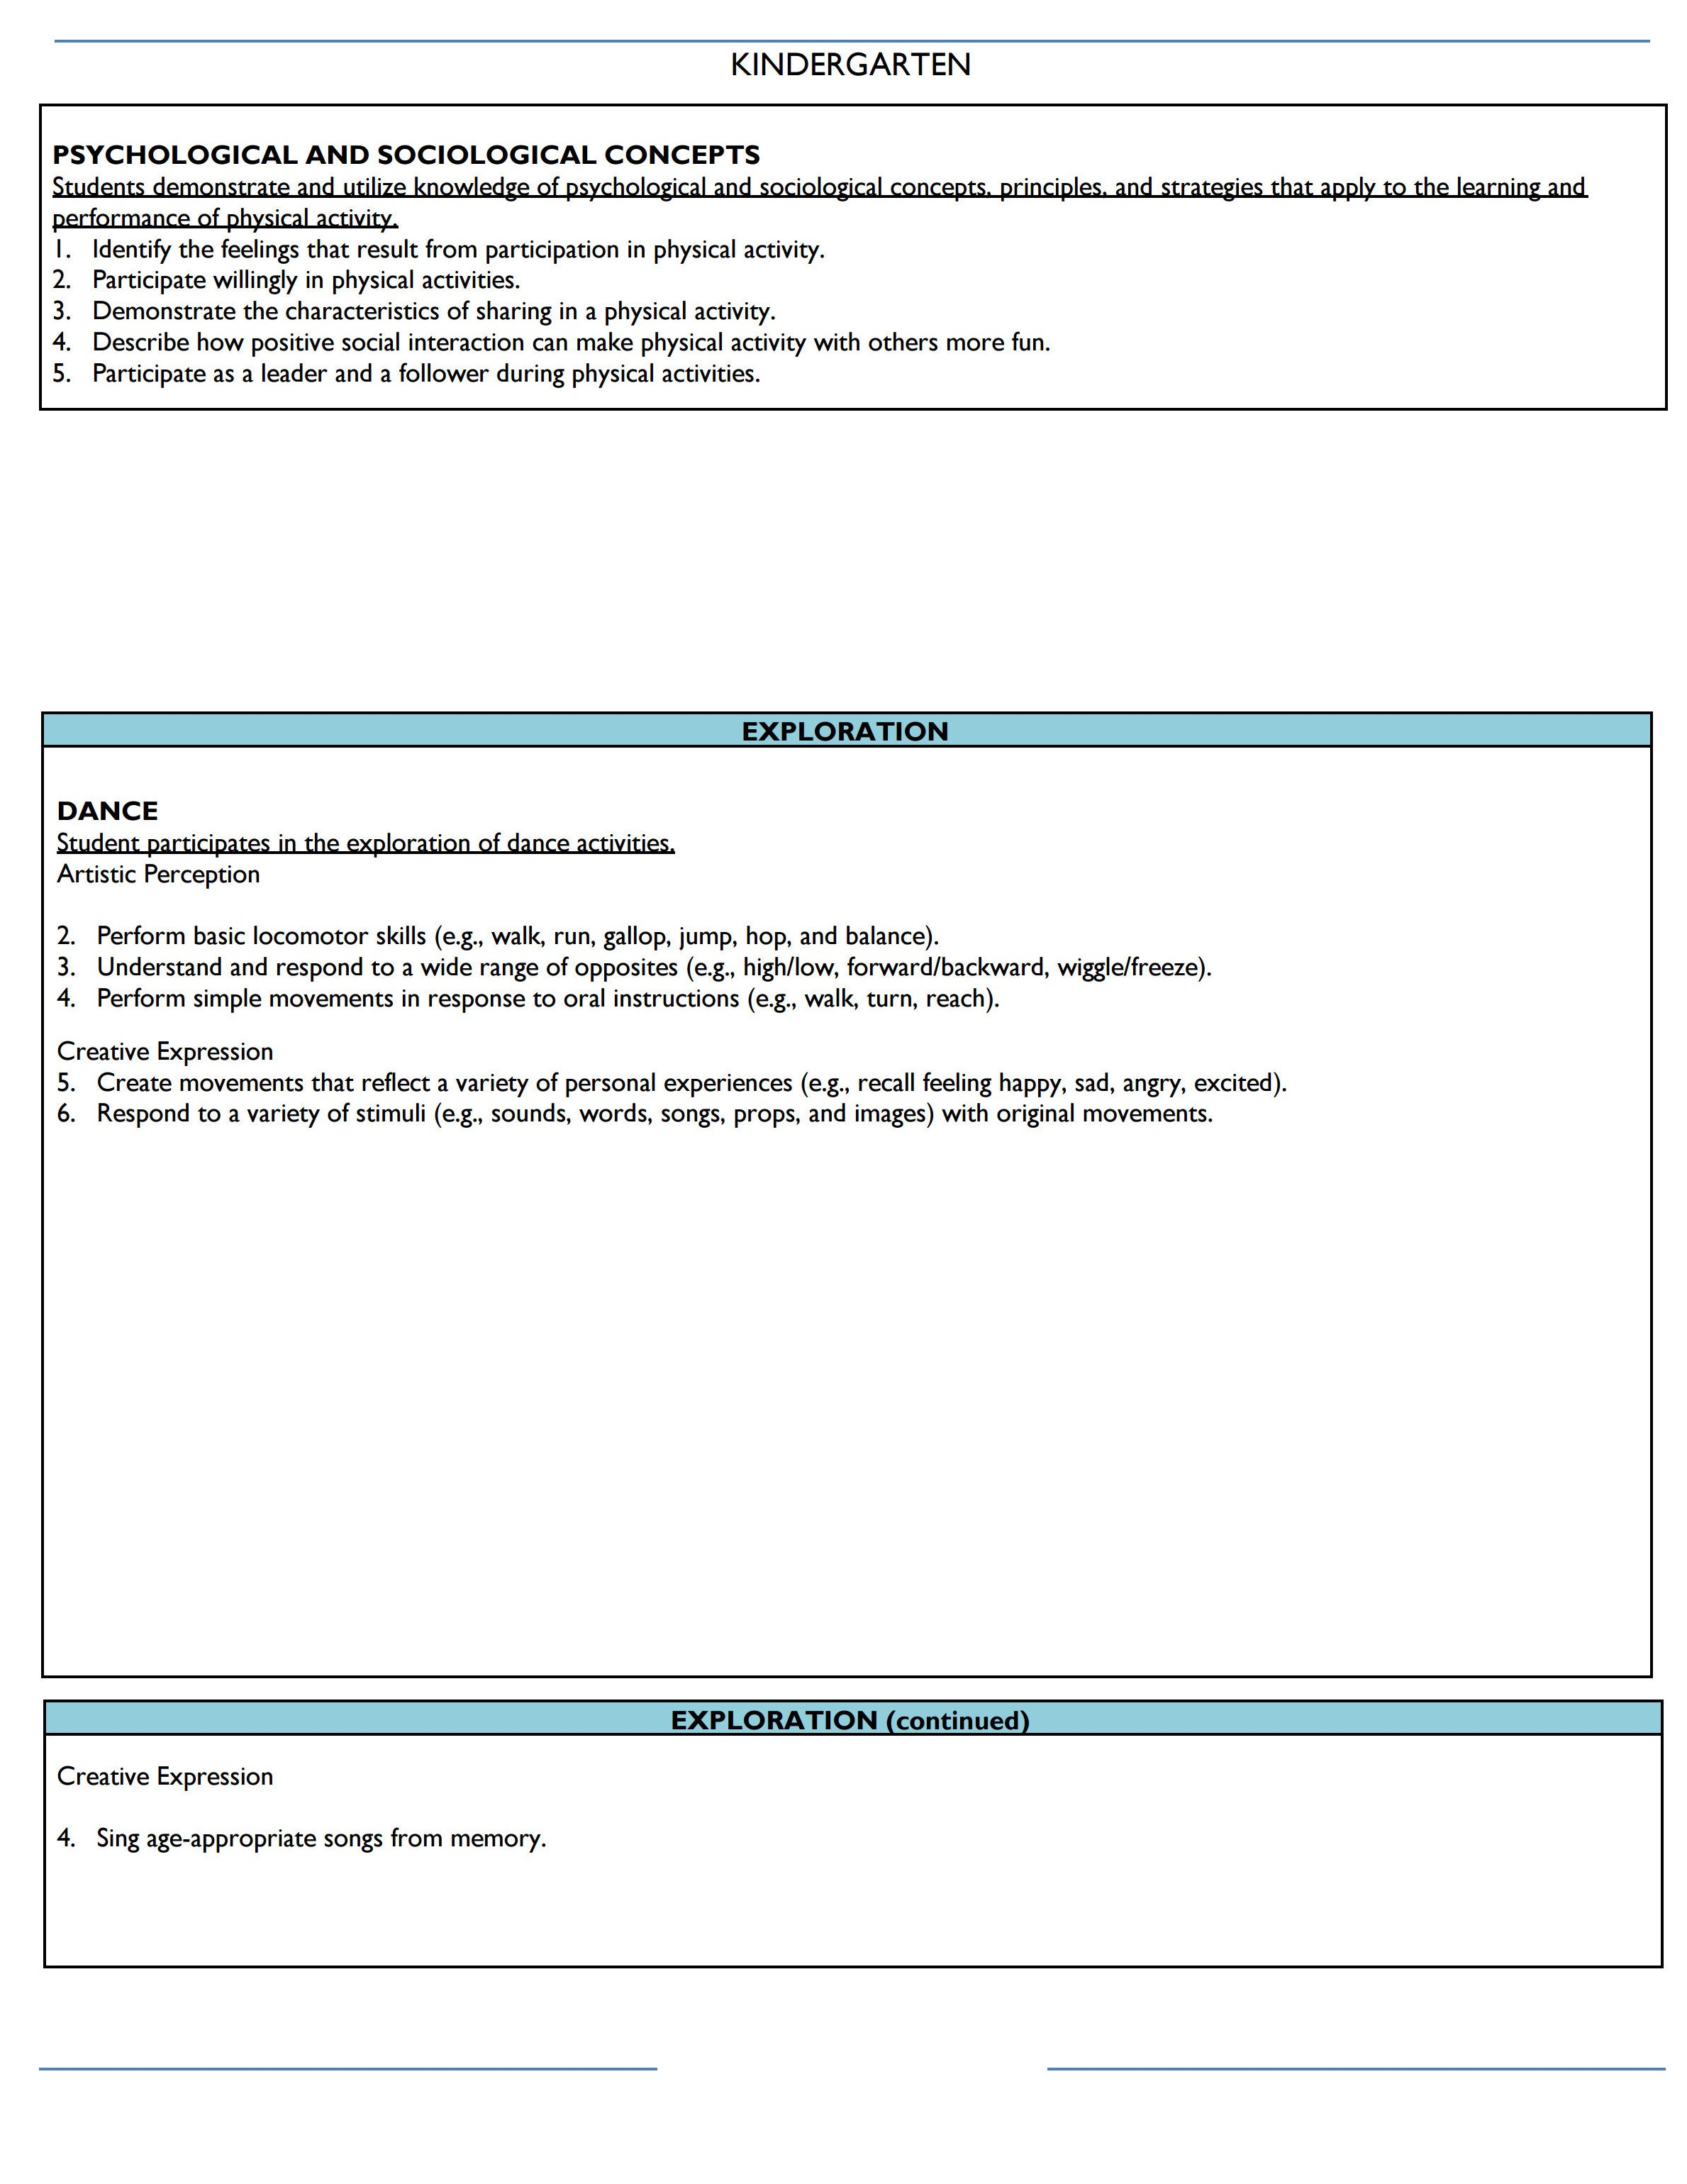 Ms. Amy's Covered TK_K California Standards.doc-7.jpg